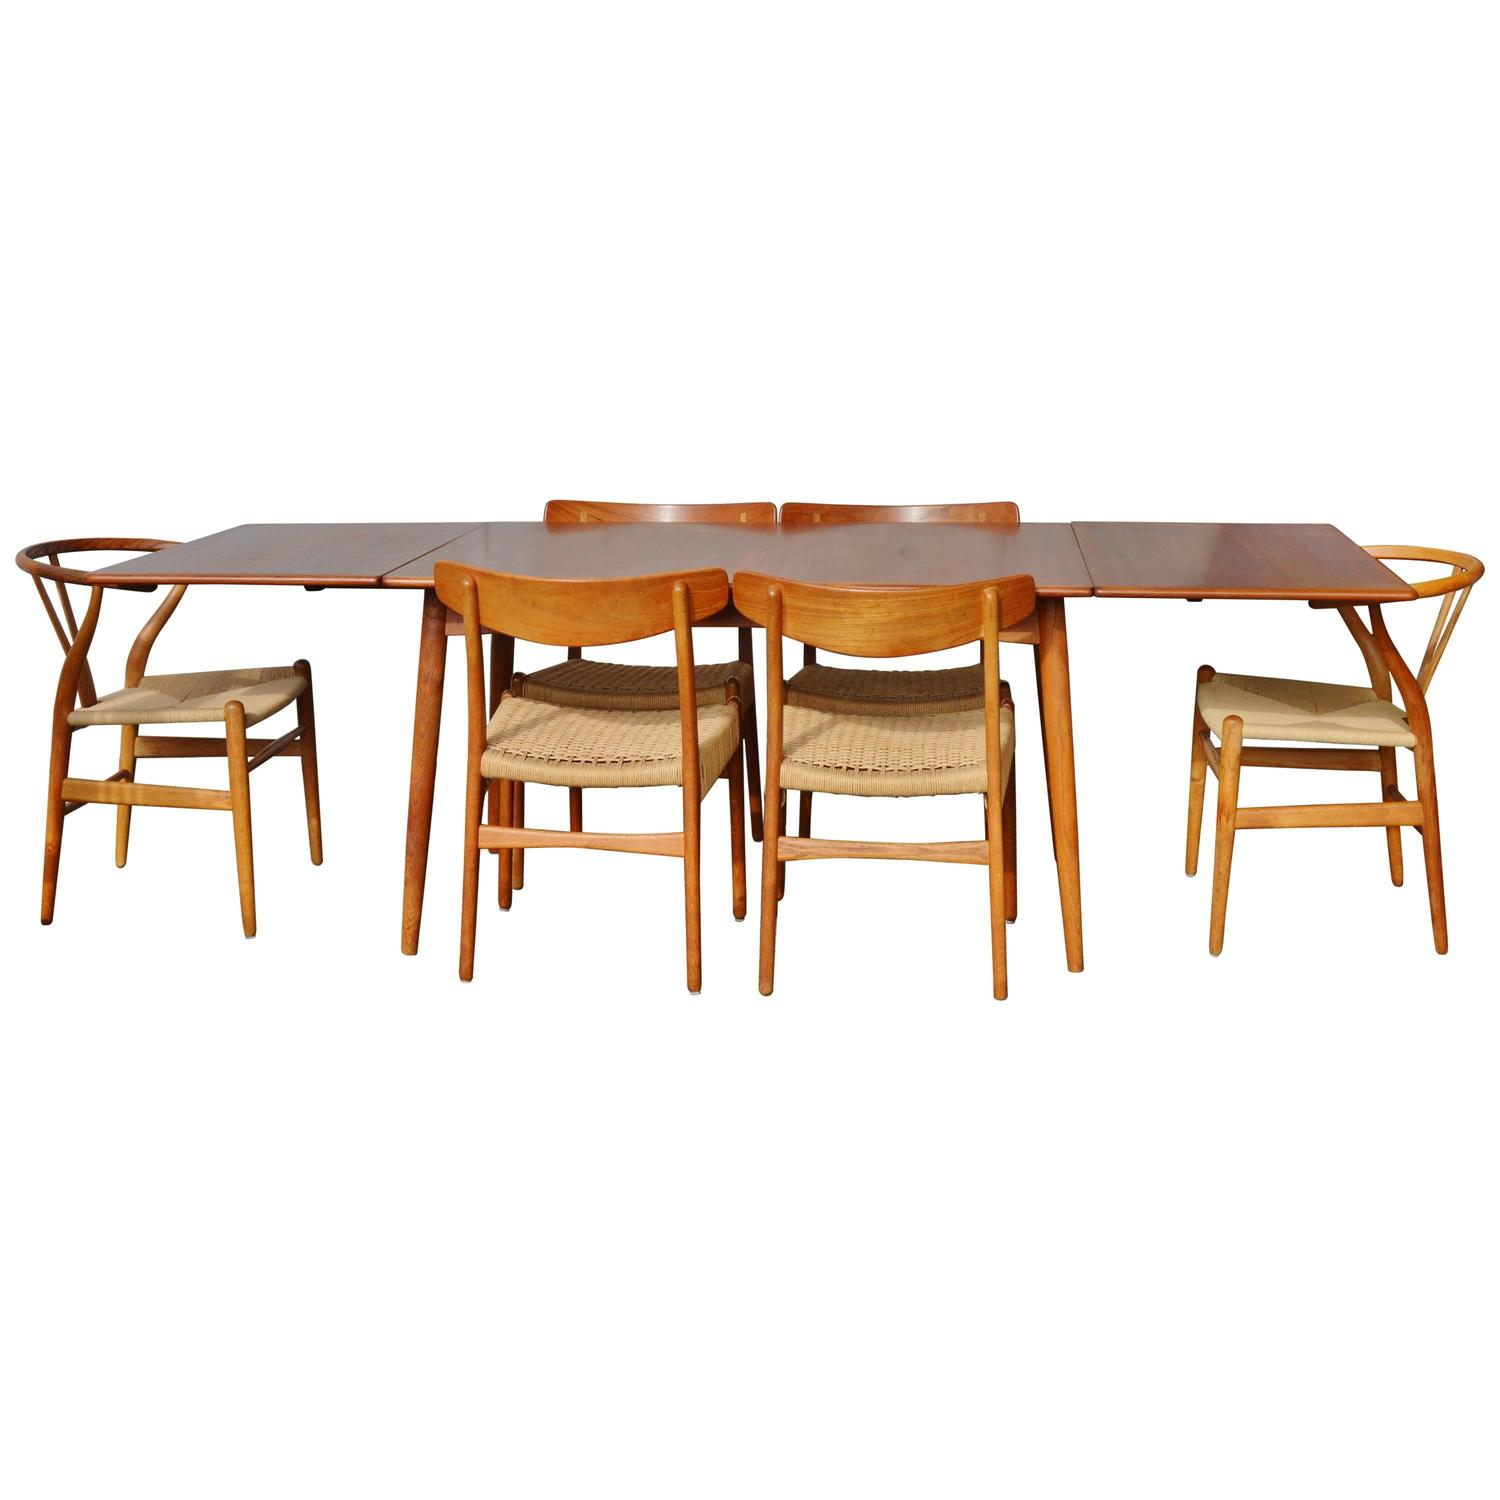 Impeccable quality hans wegner drop leaf dining table with for Dining room tables quality